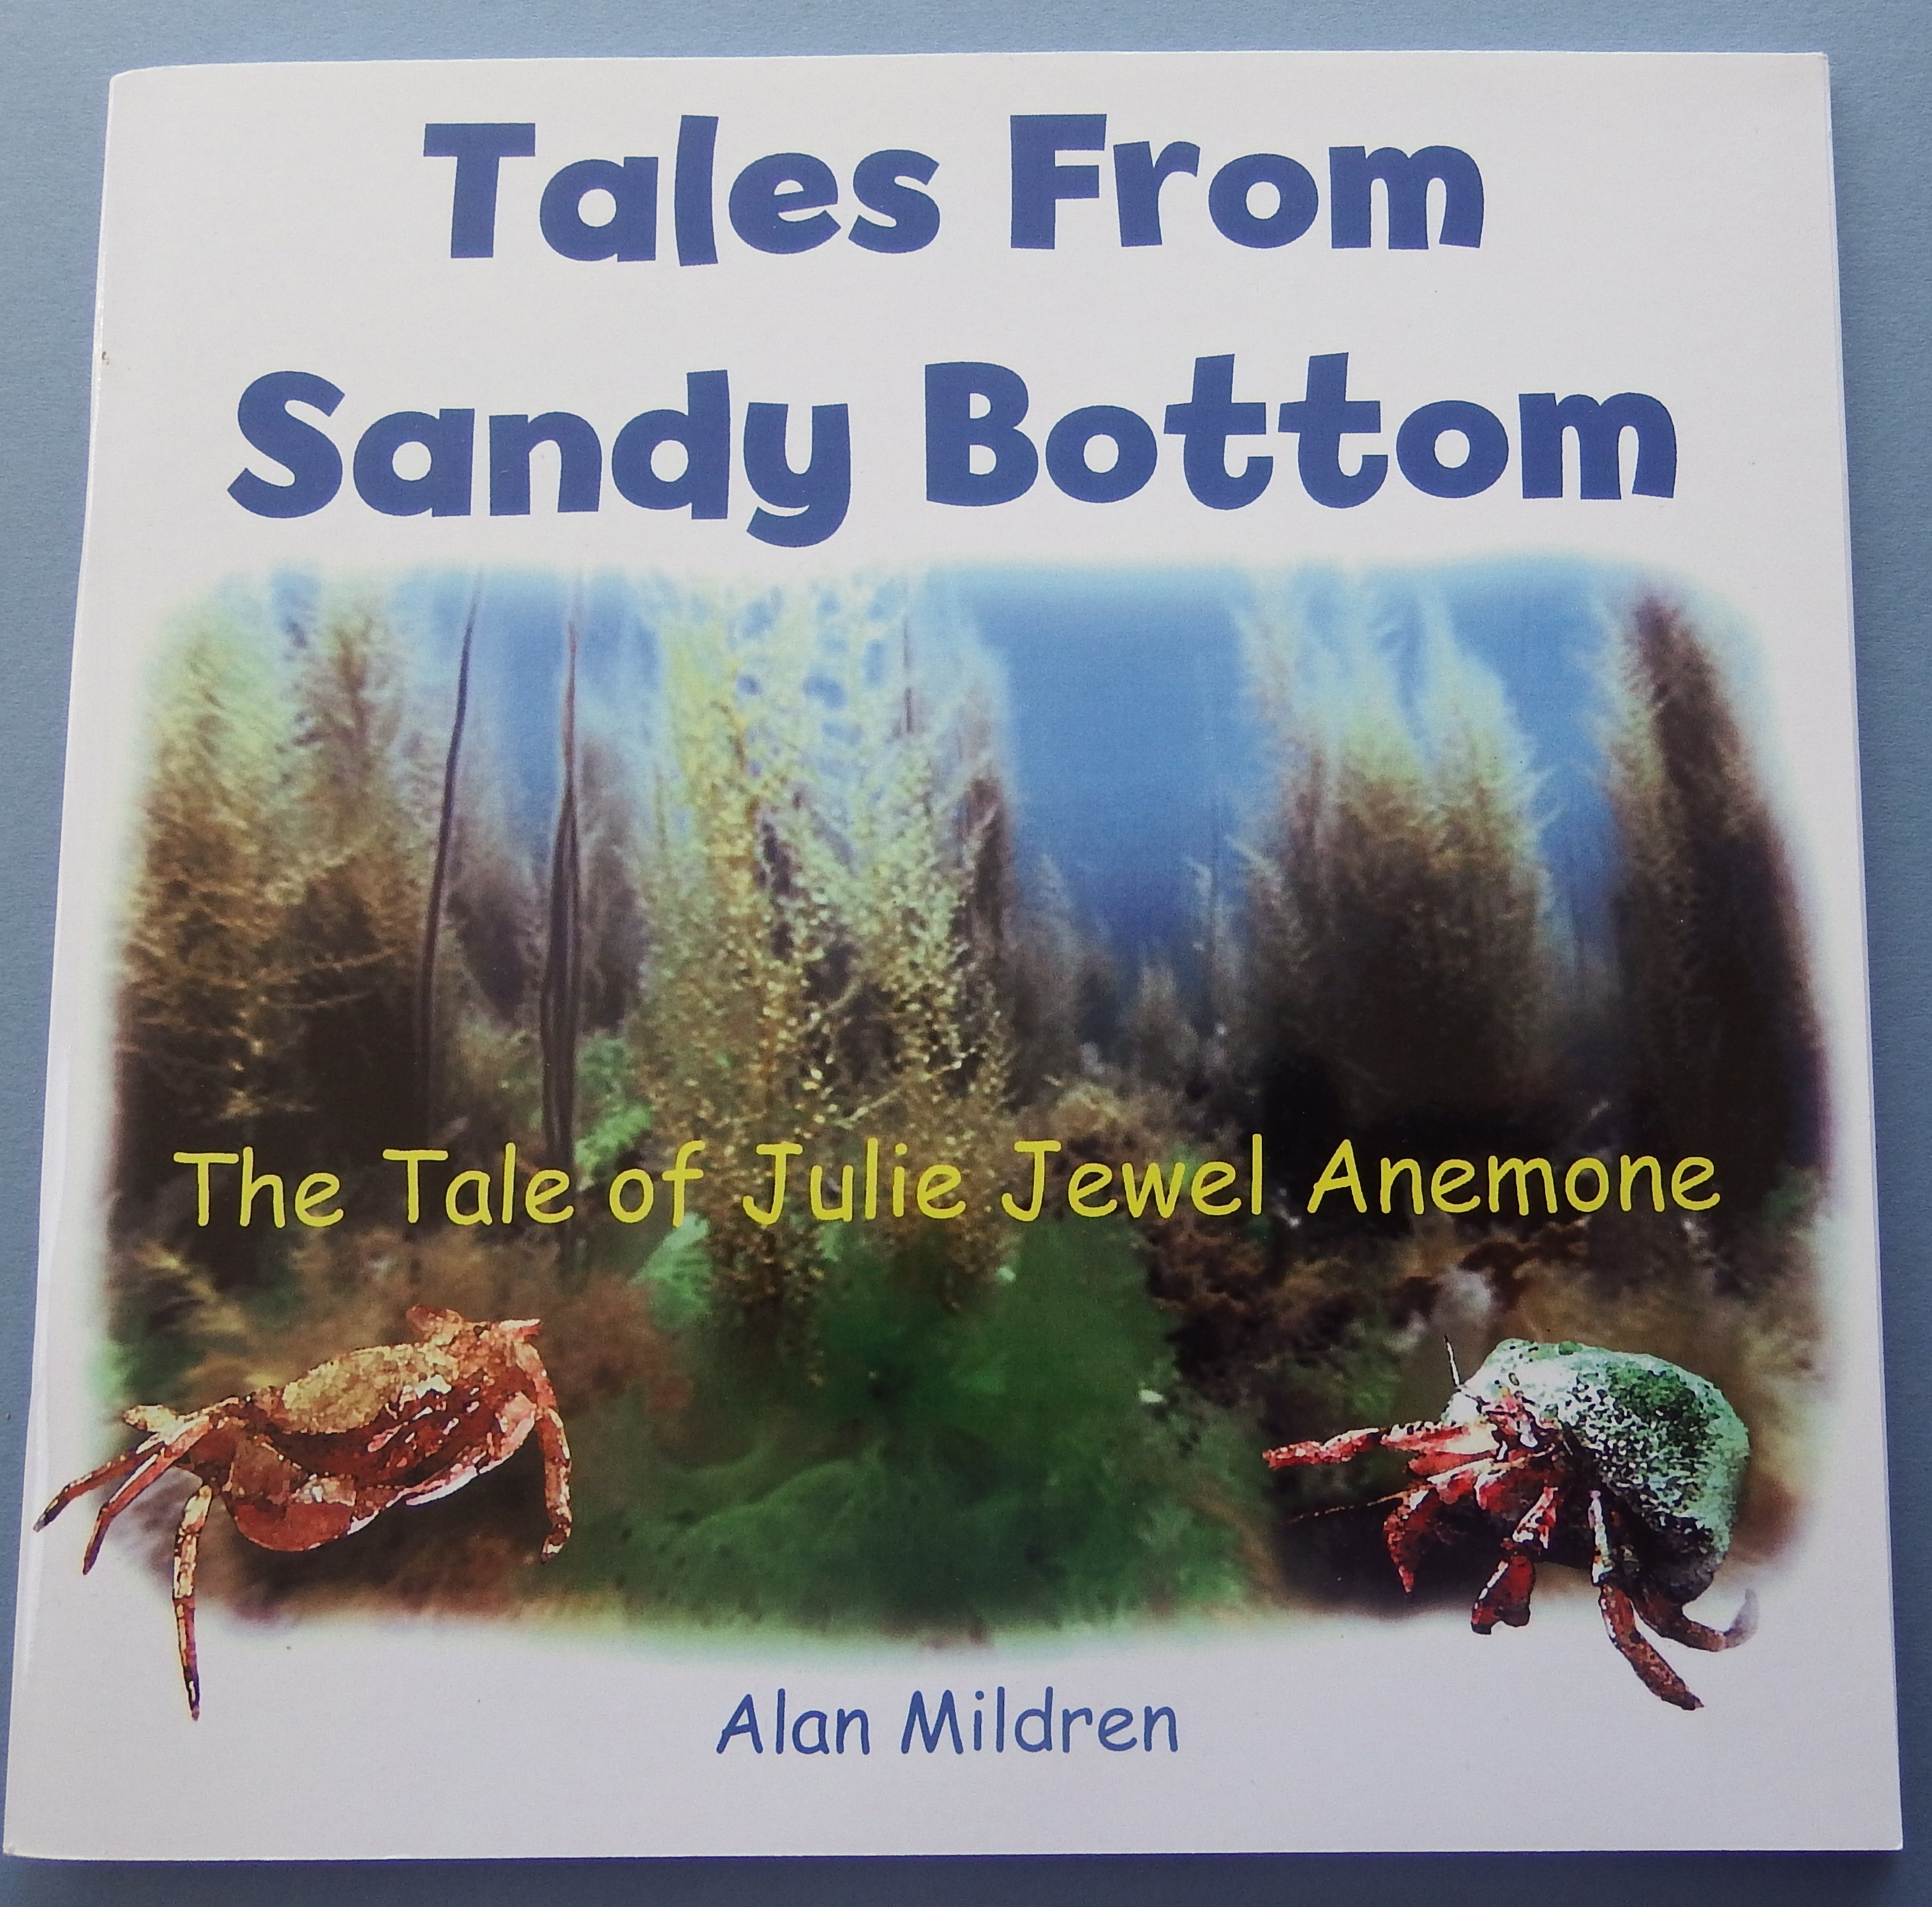 Tales from Sandy Bottom